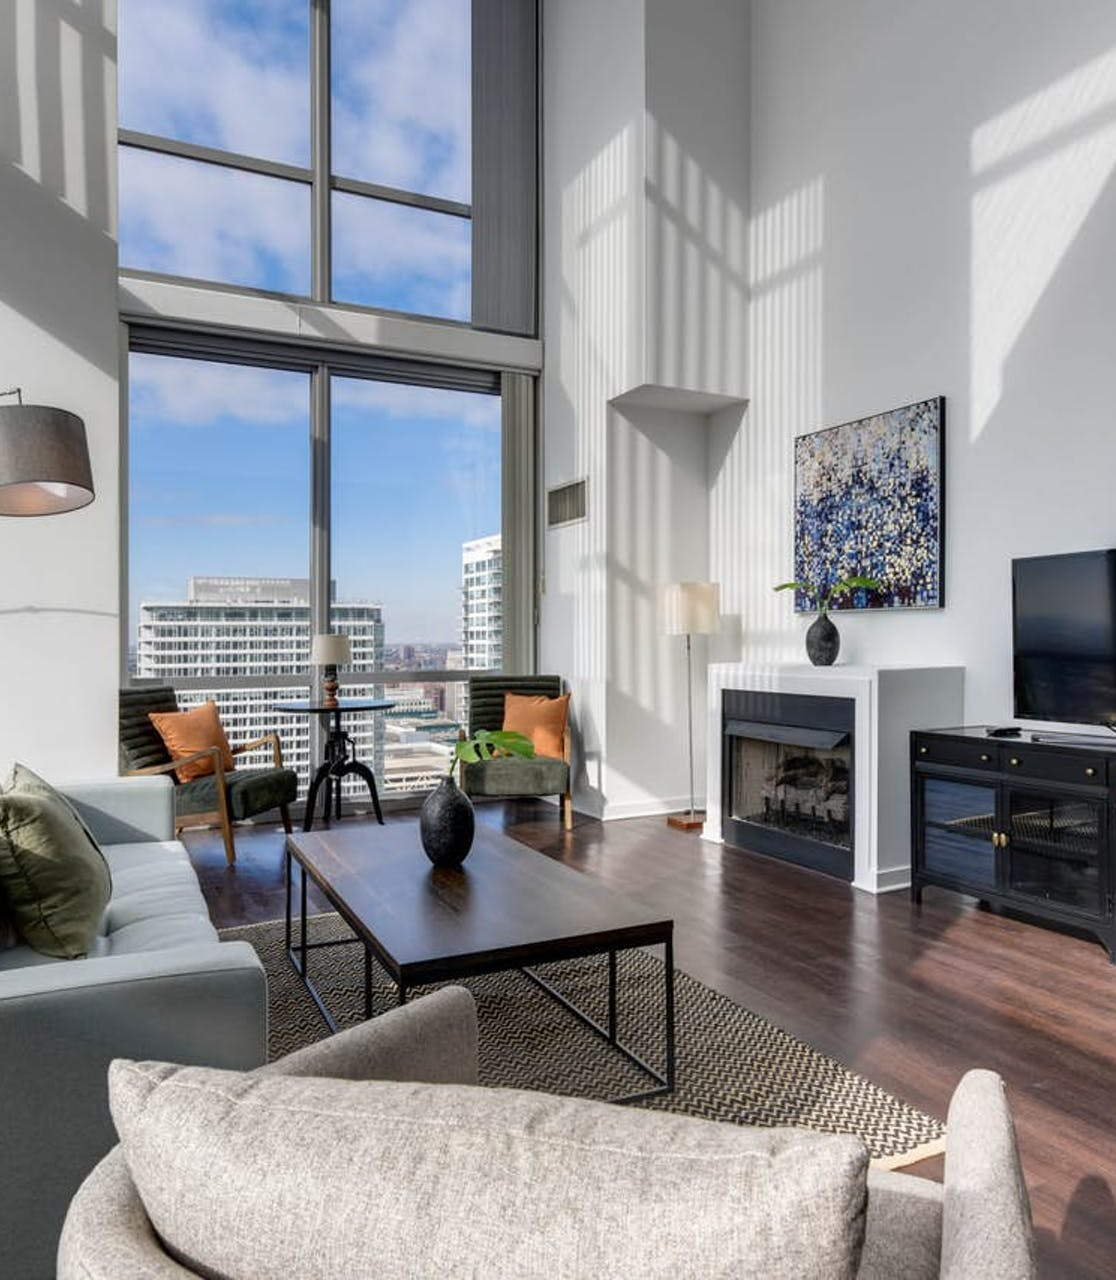 Penthouse vacation rental in Chicago, IL